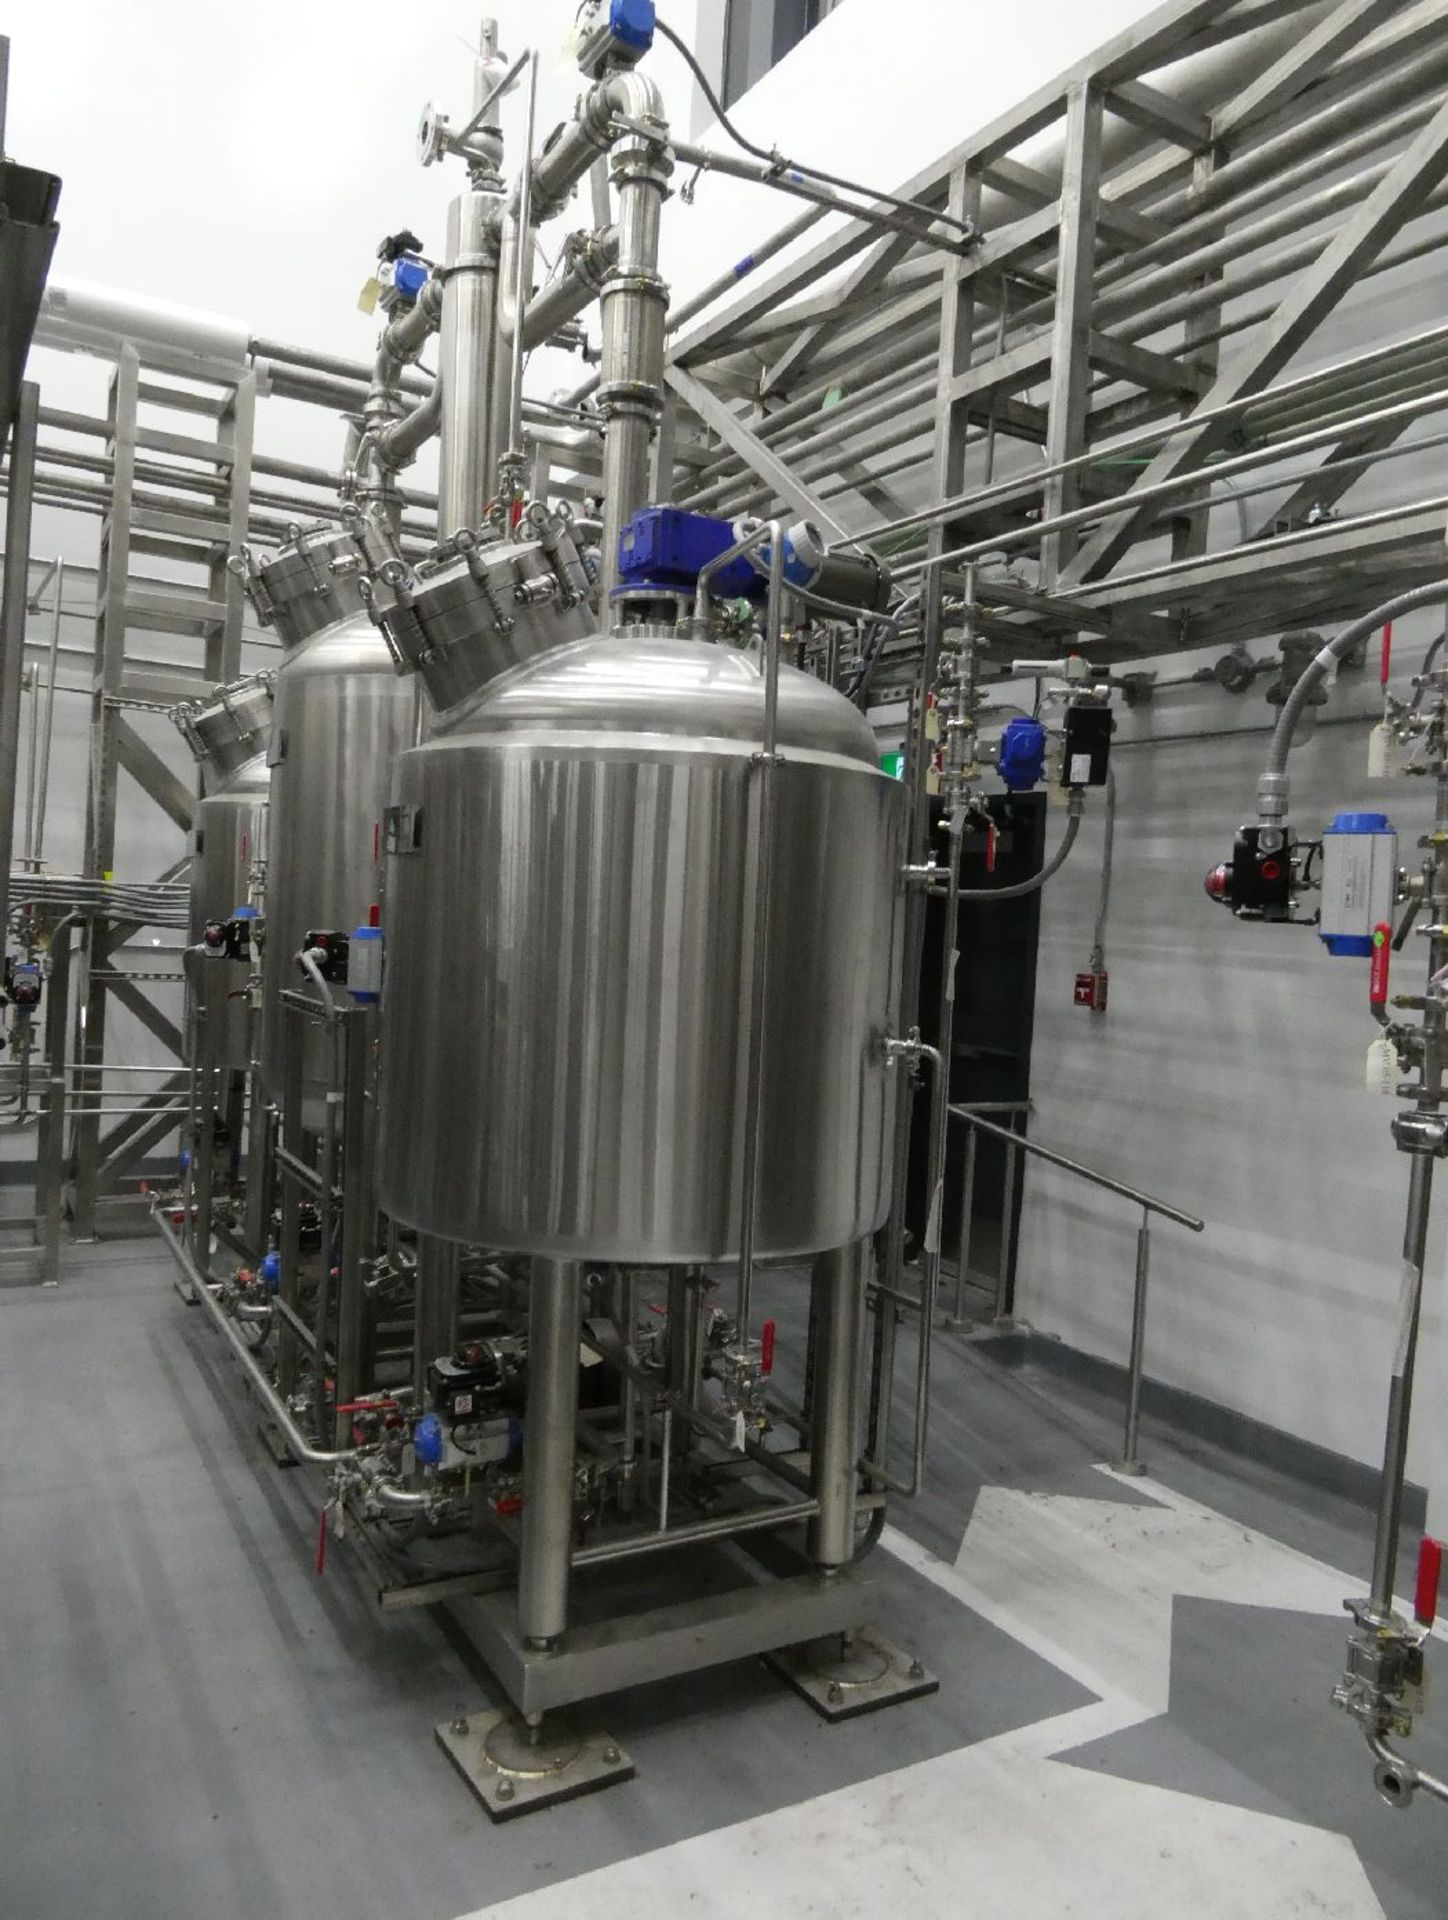 ROTAX Closed Loop Solvent Based Continuous Oil Extraction System - Image 41 of 68